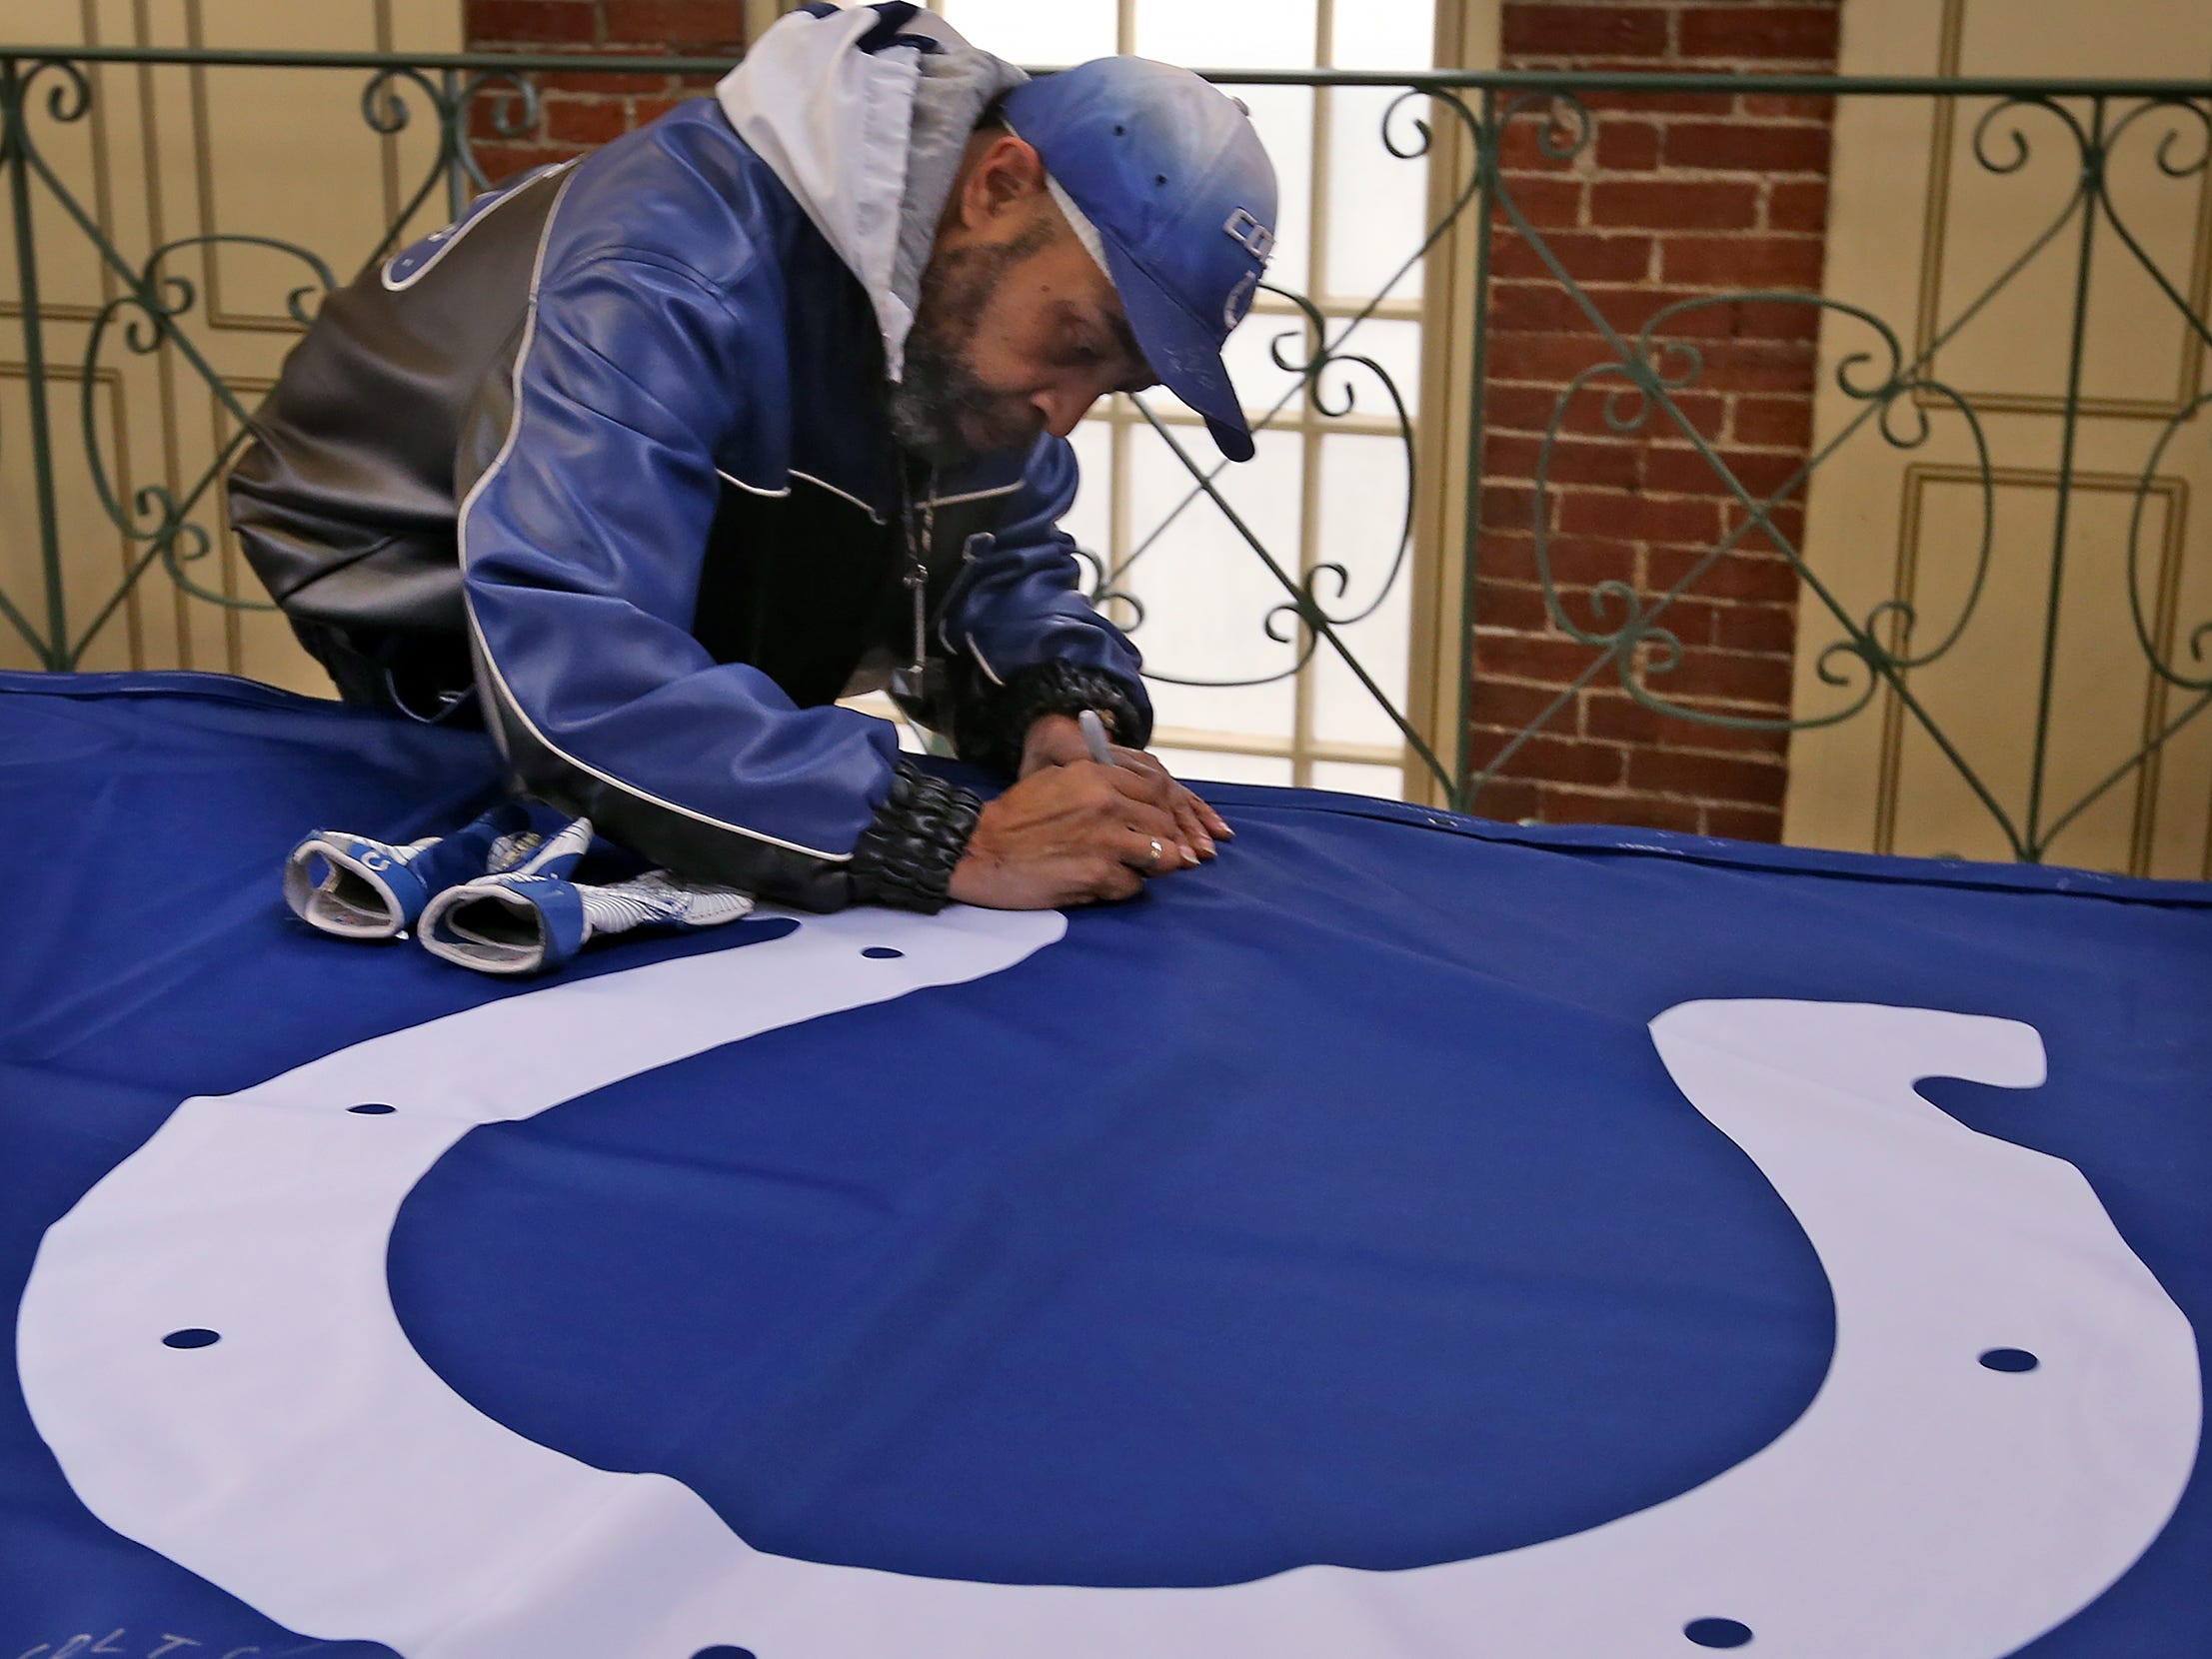 Colts fan David Woods signs a 1-0 banner for the Colts at City Market, Thursday, Jan. 10, 2019.  The banner will be displayed for the team to see at the airport as they head off to their Kansas City playoff game.